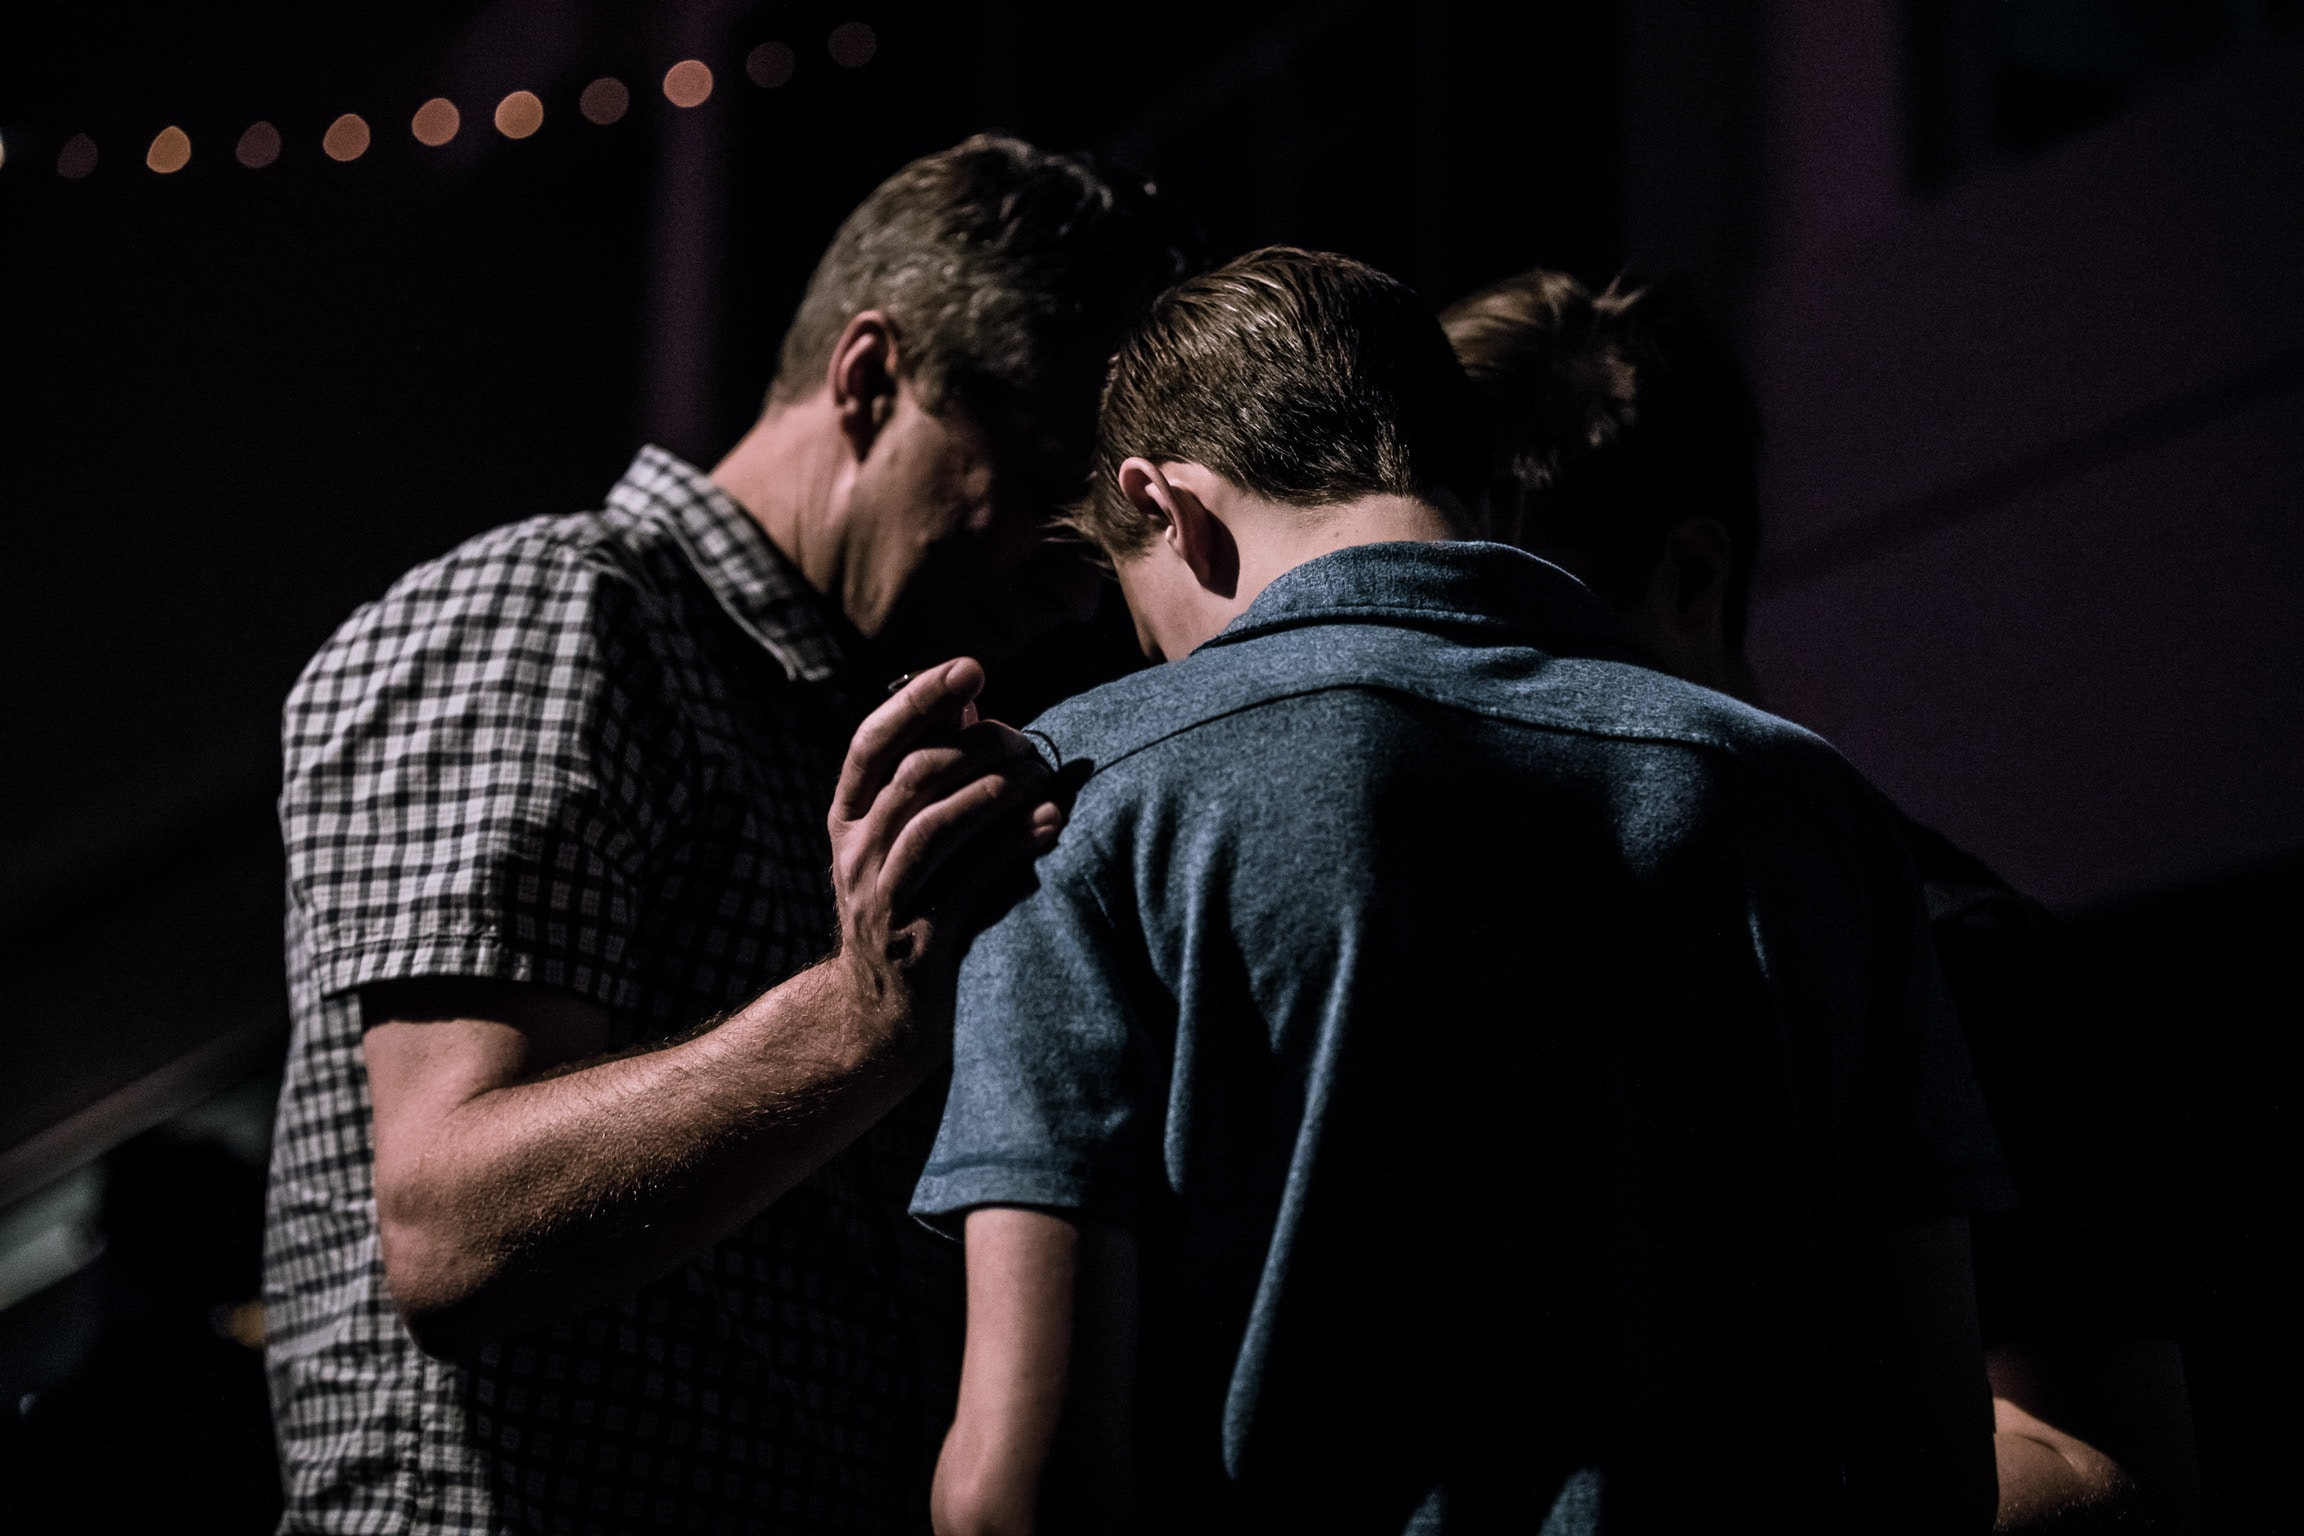 youth pastor praying for student